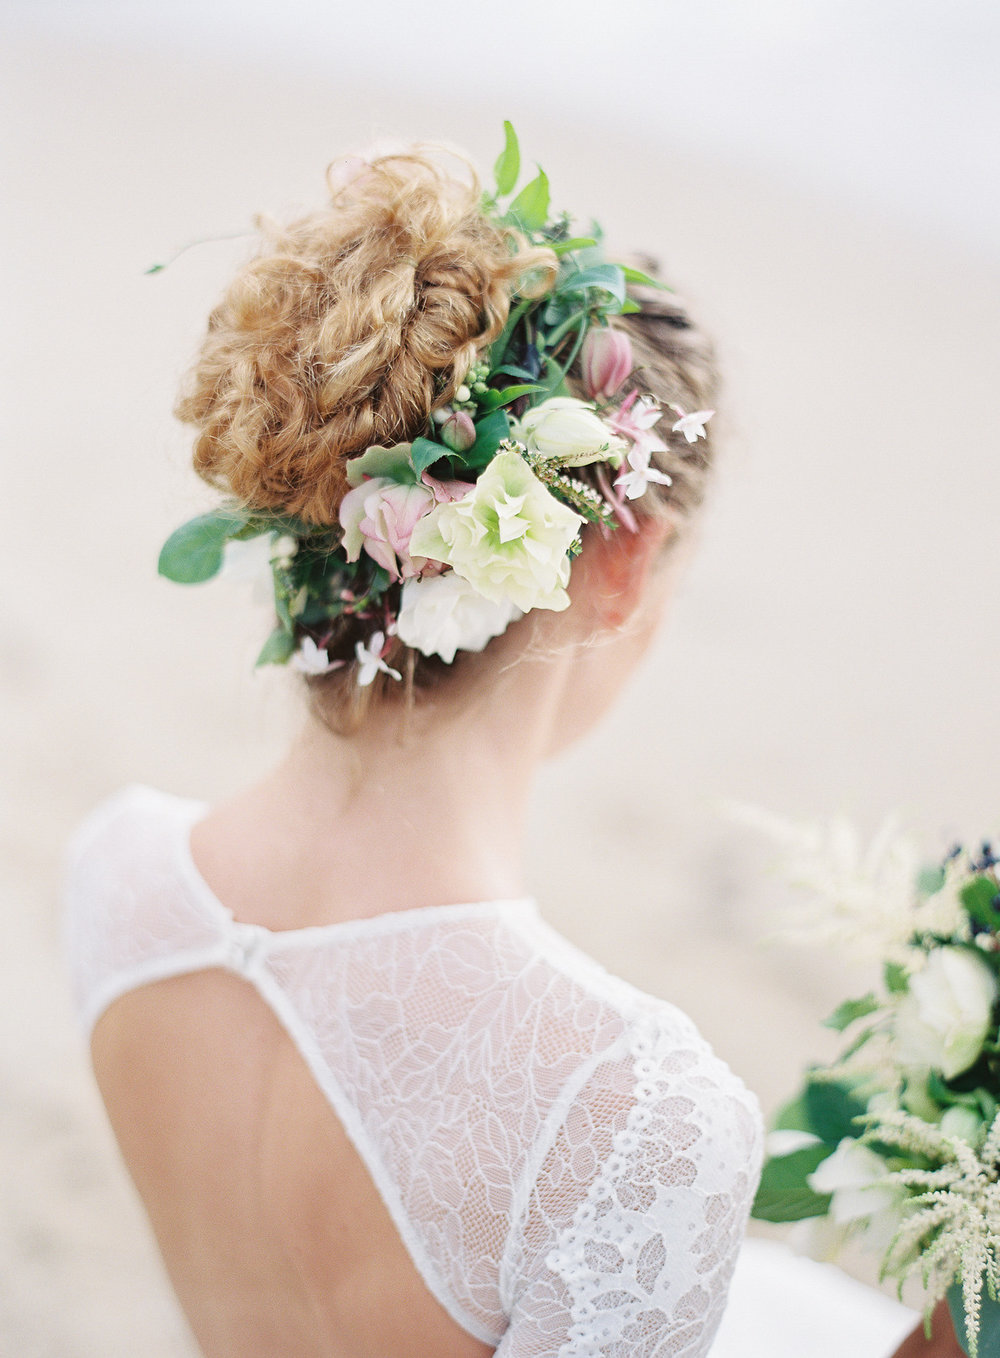 hair-flowers-flower-crown-hawaii-florist-designs-by-hemingway.jpg